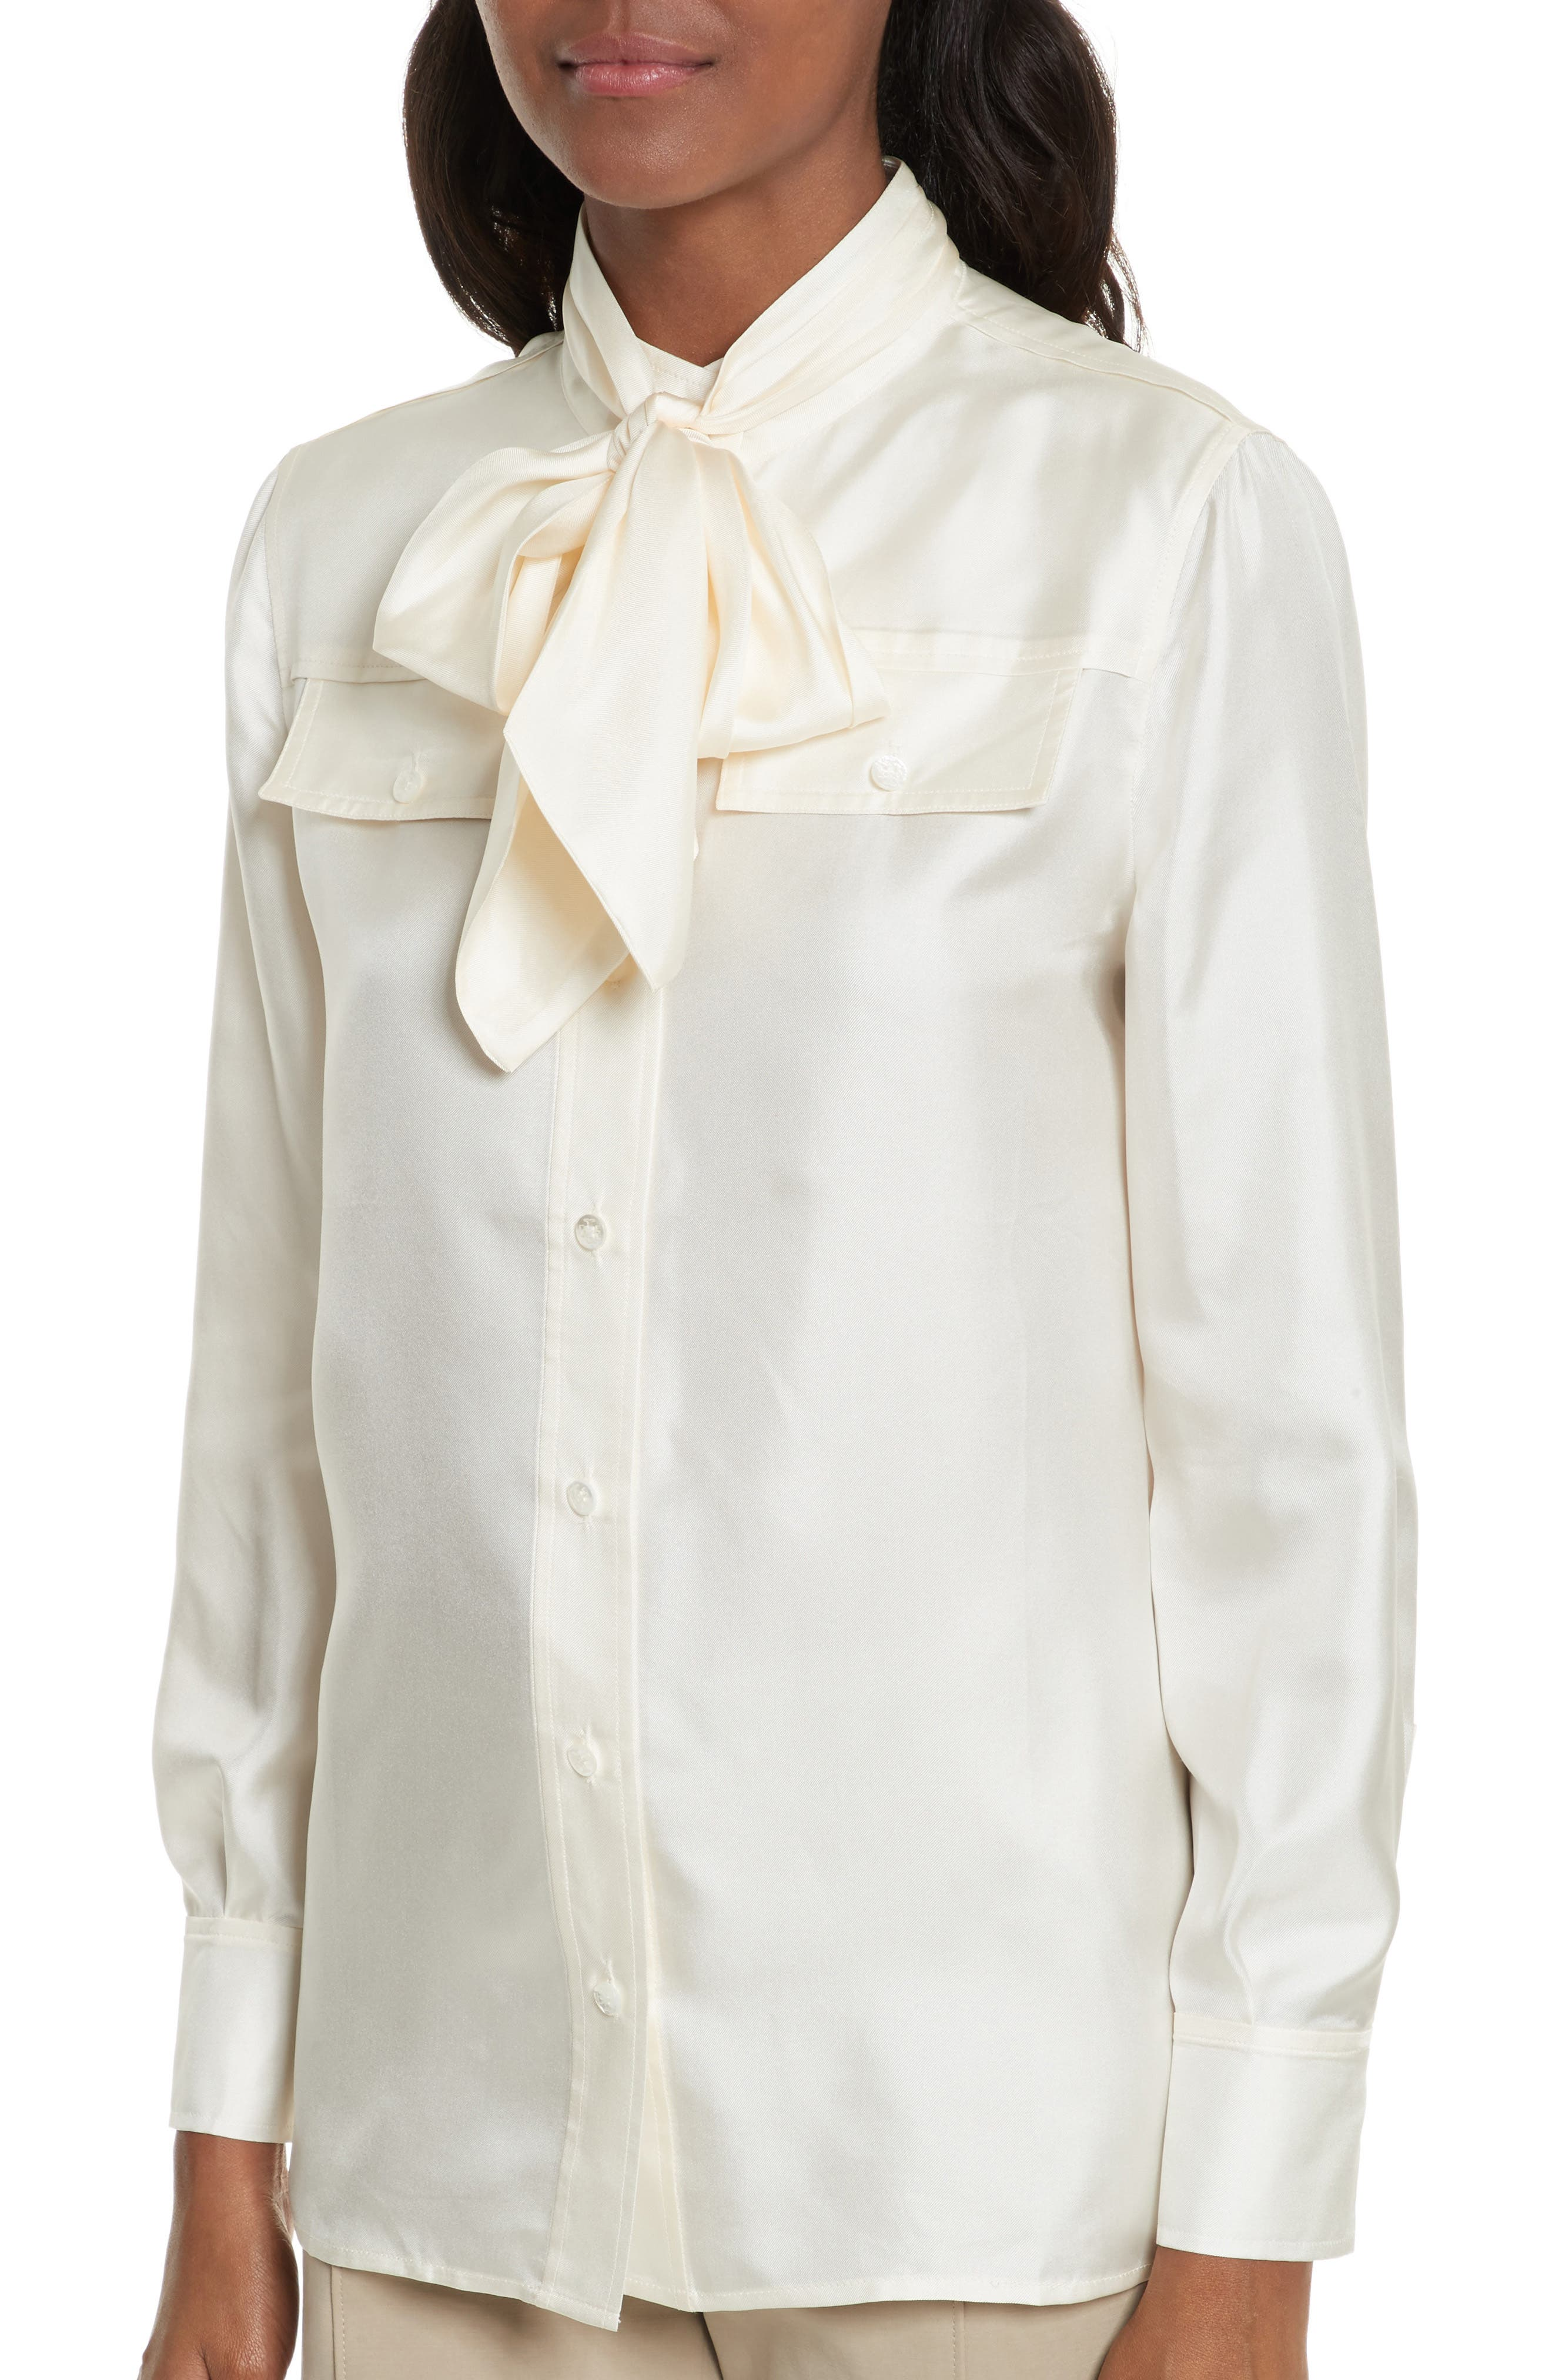 TORY BURCH,                             Holly Tie Neck Silk Blouse,                             Alternate thumbnail 4, color,                             904